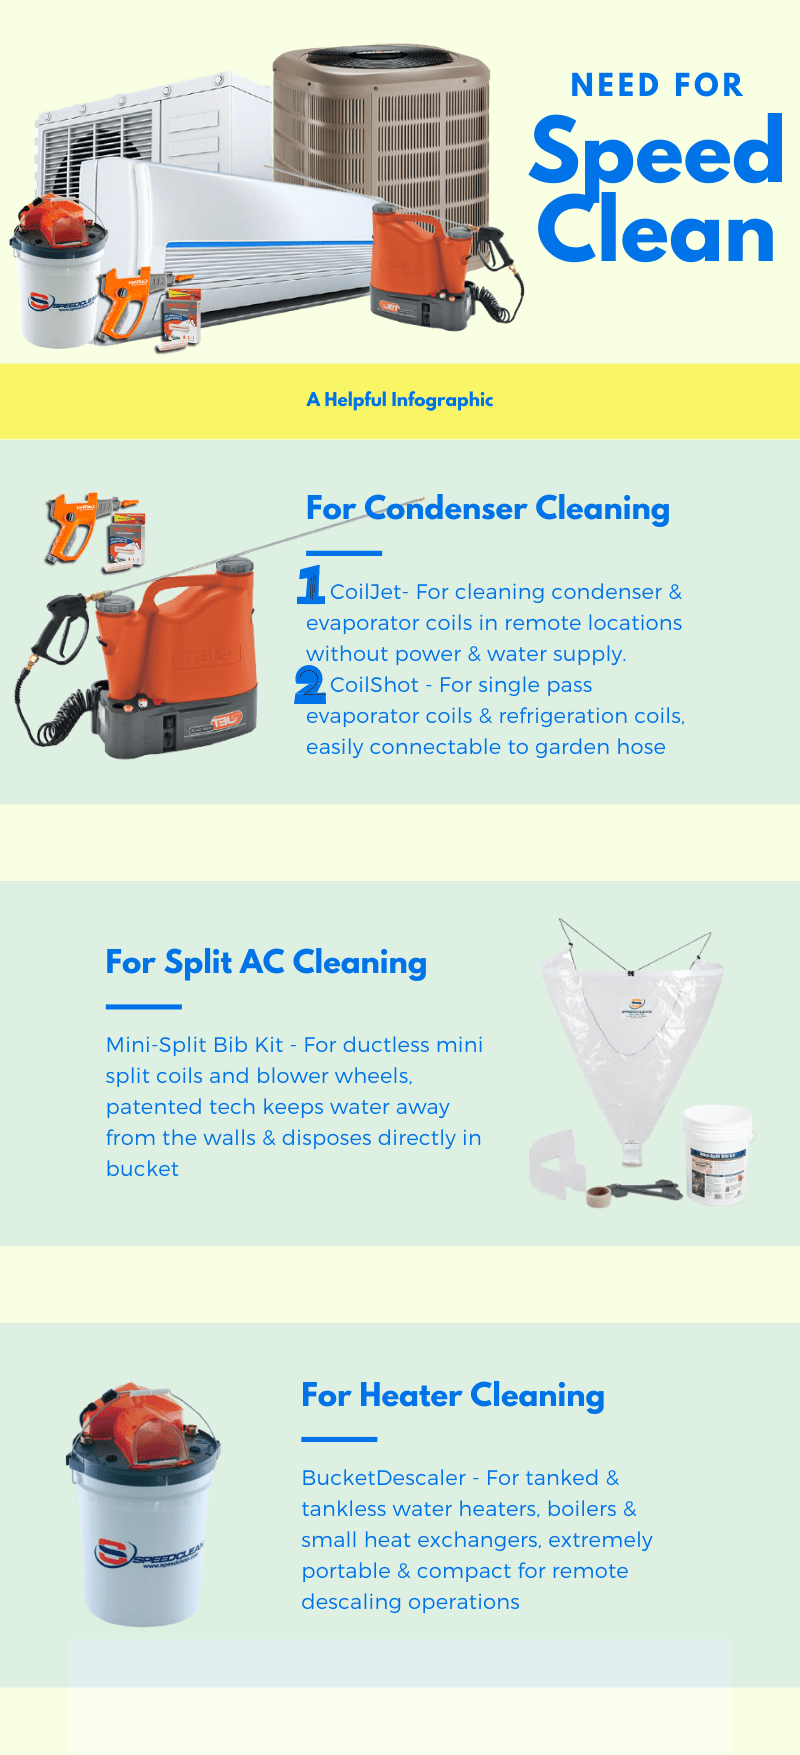 SpeedClean coil cleaning systems for condensers, split AC systems and heat exchangers